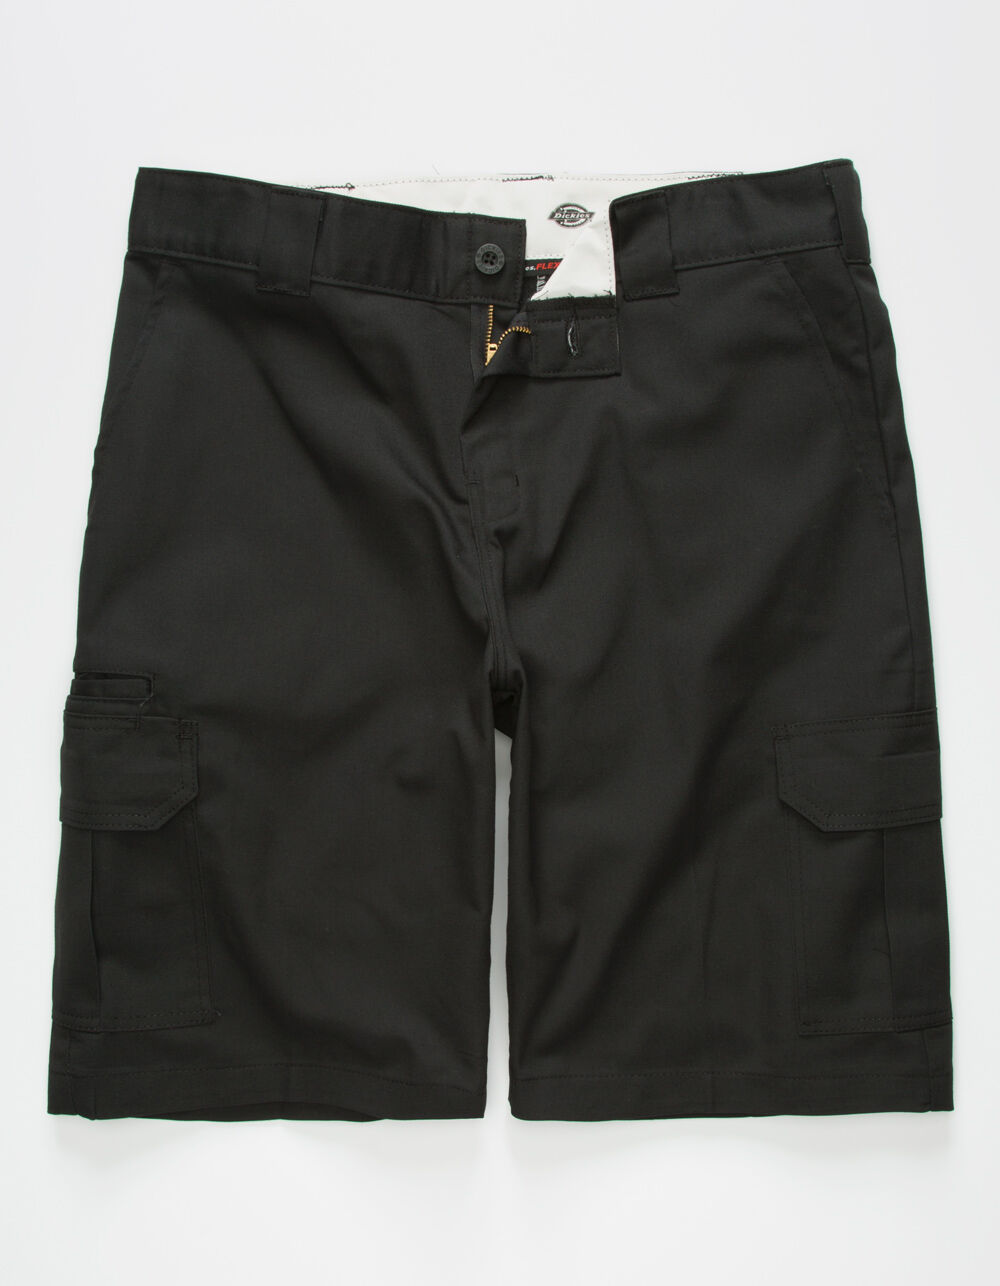 DICKIES Flex Relaxed Fit Black Cargo Shorts